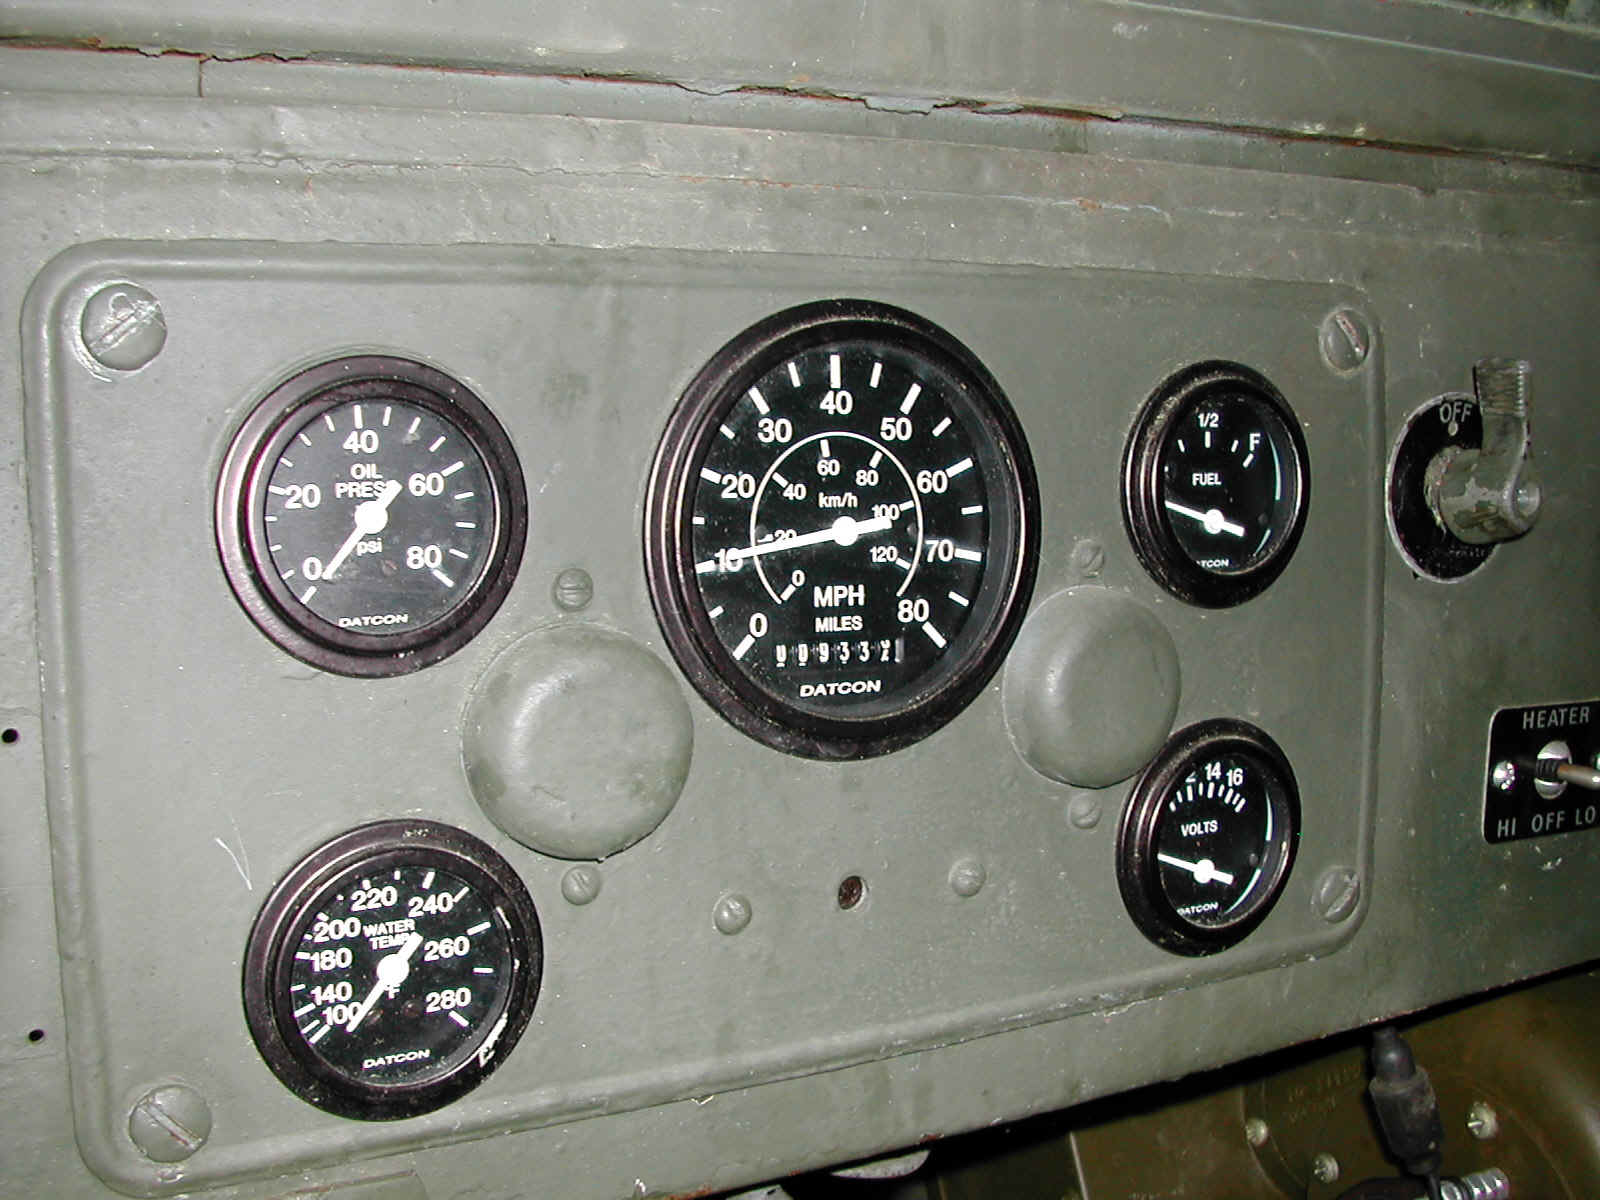 DatconGuages Datcon Oil Pressure Gauge Wiring Diagram on